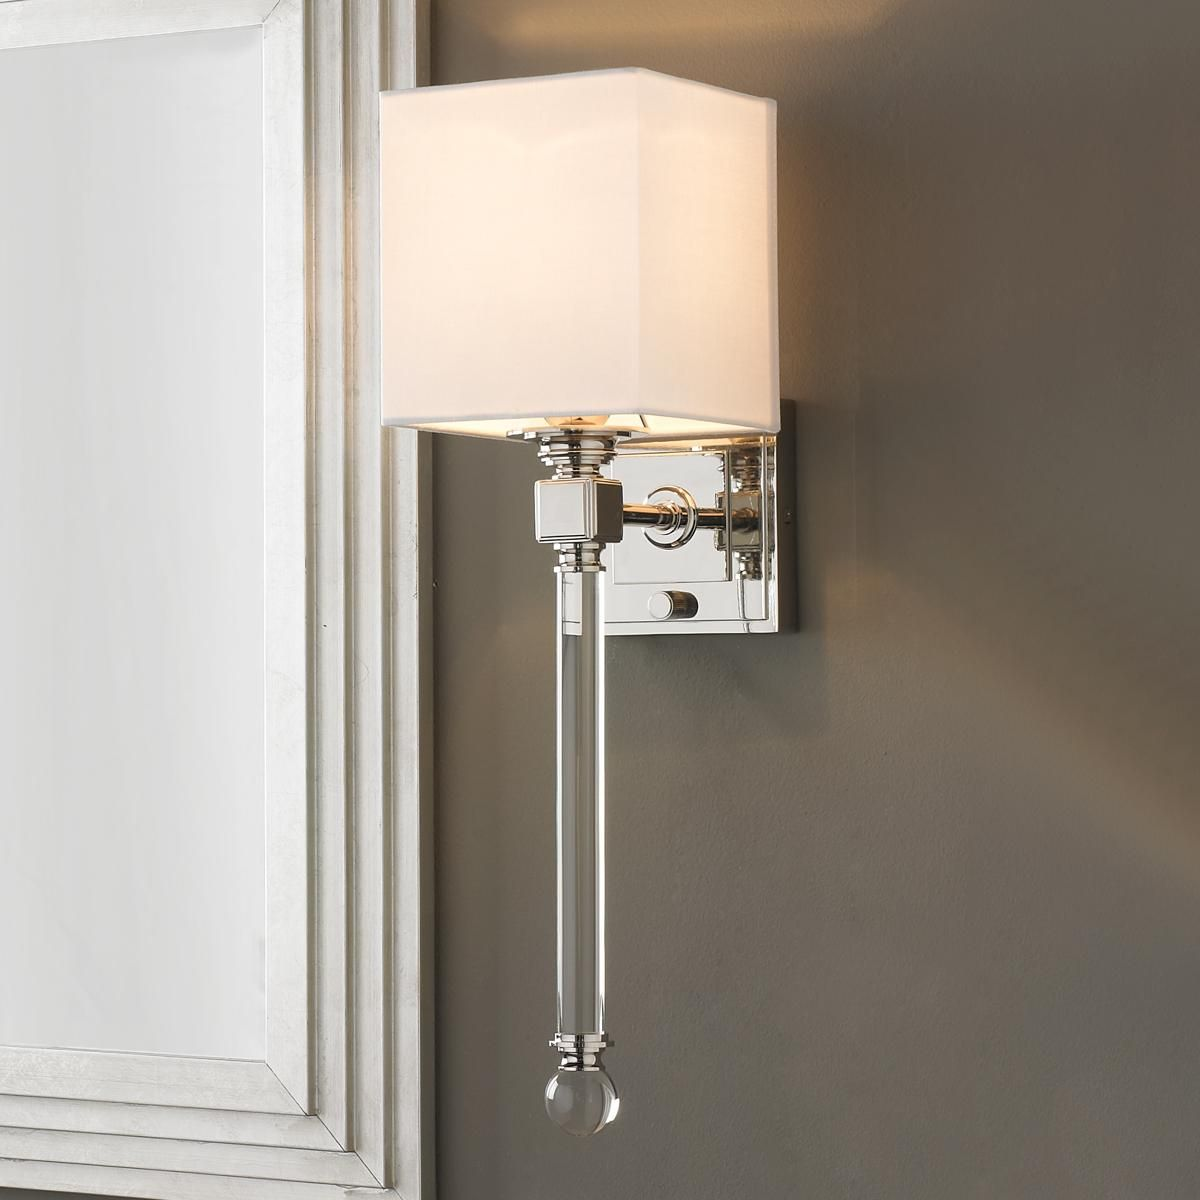 Chic Sophisticate Crystal Torch Wall Sconce Torches, Wall sconces and Crystals